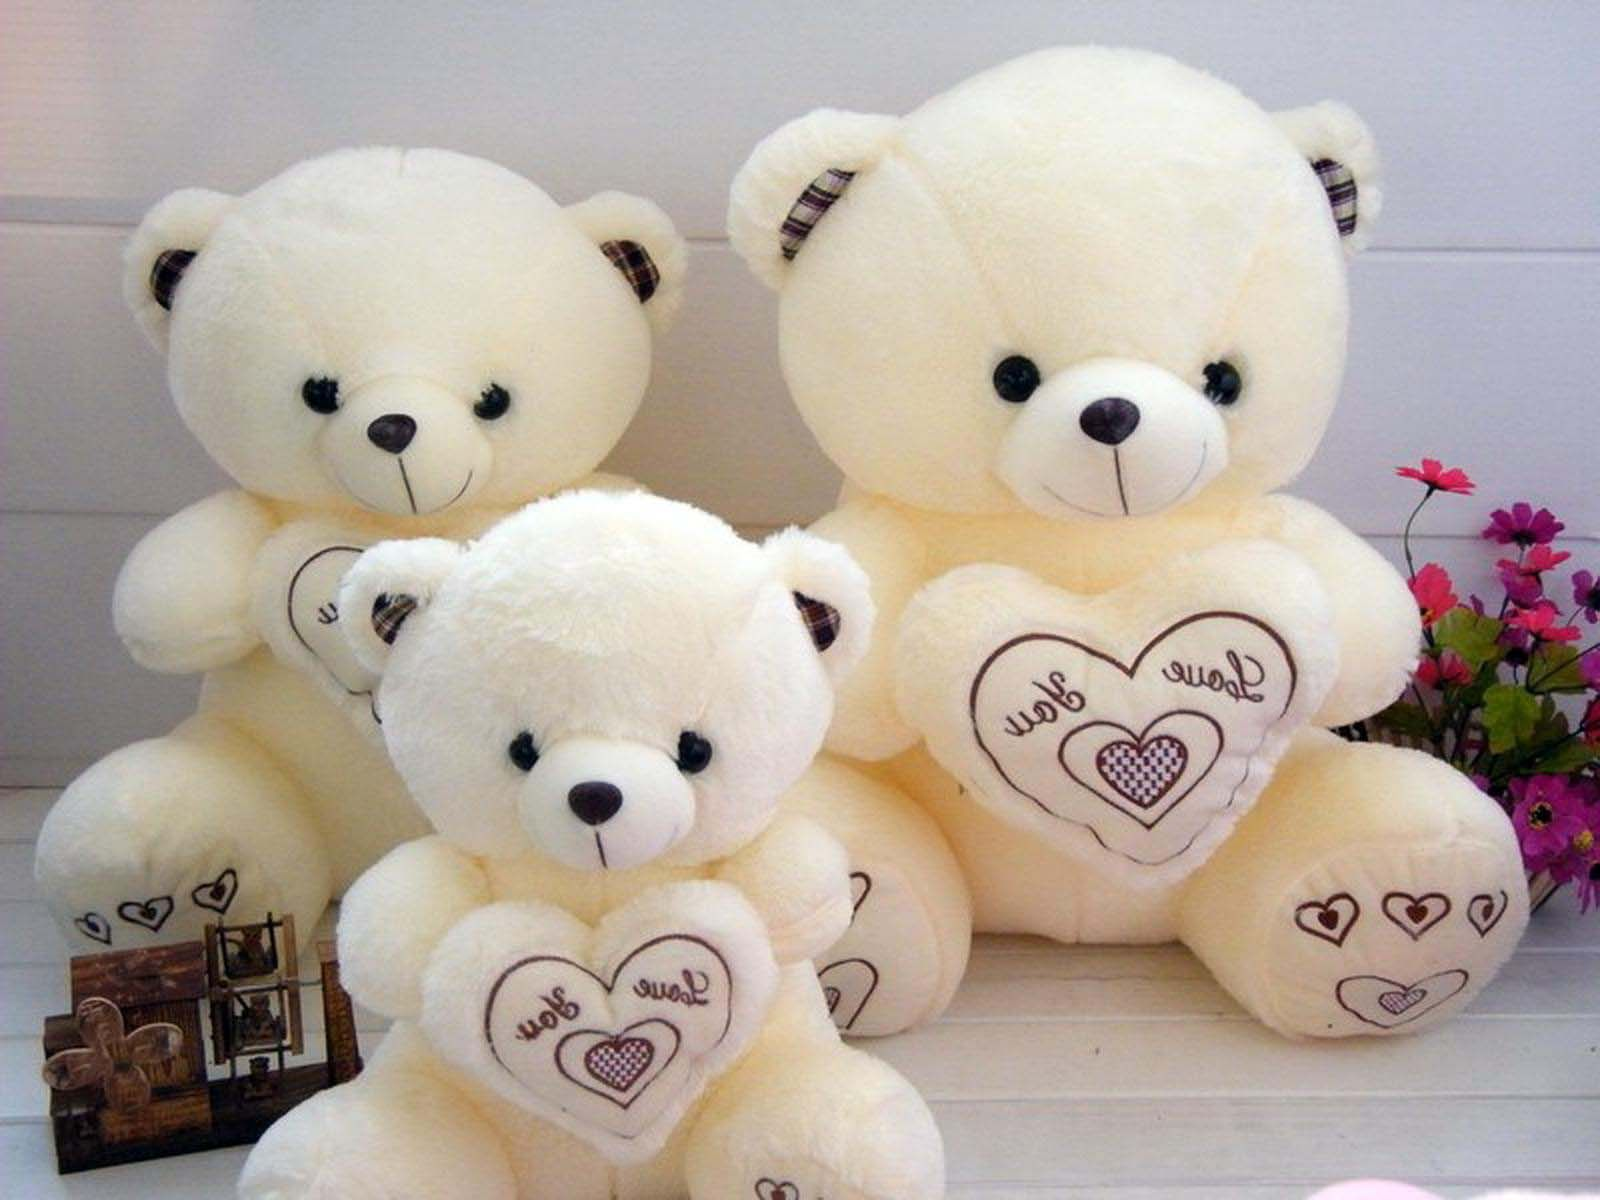 teddy bear wallpapers hd images hd pictures backgrounds 1440a—900 taddy bear image